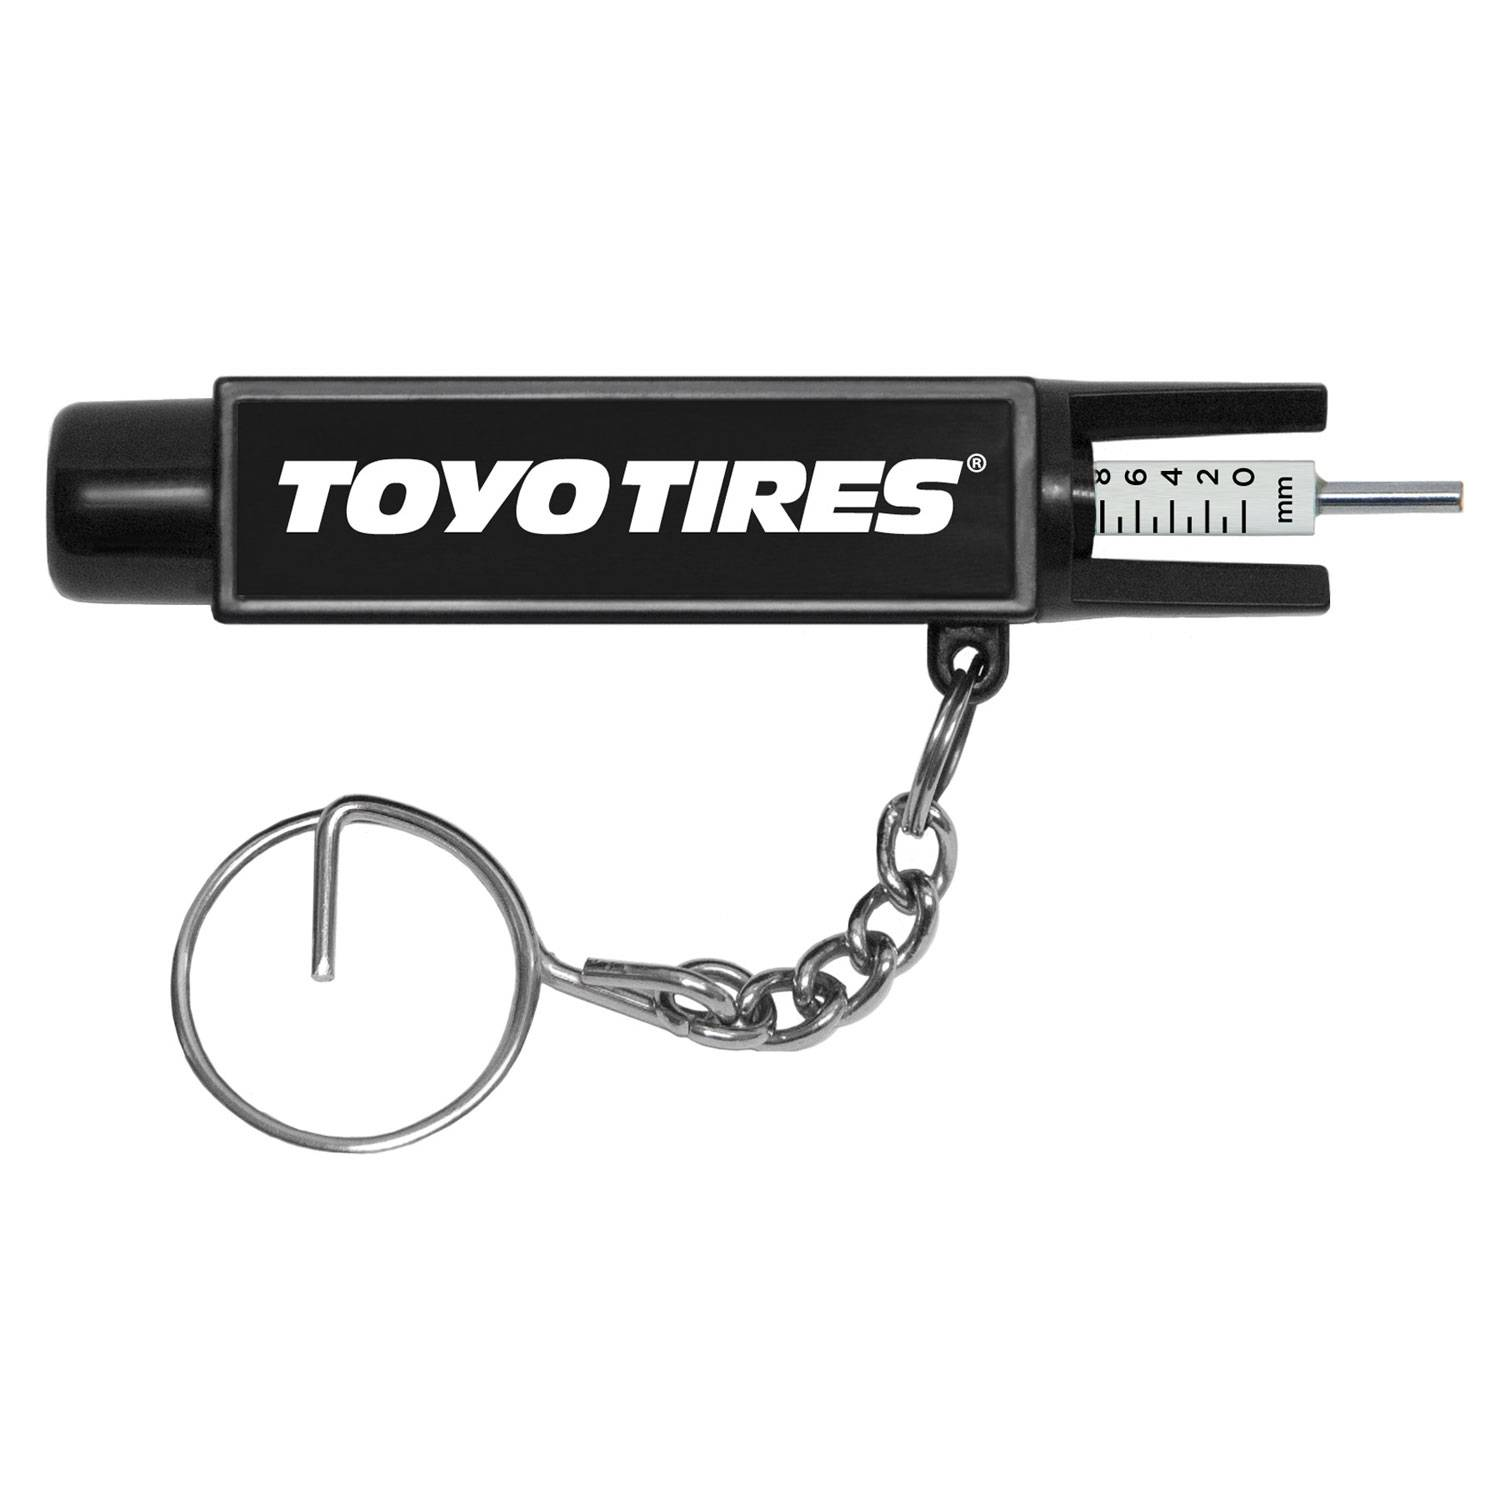 2472 - Tire Tool Key Tag